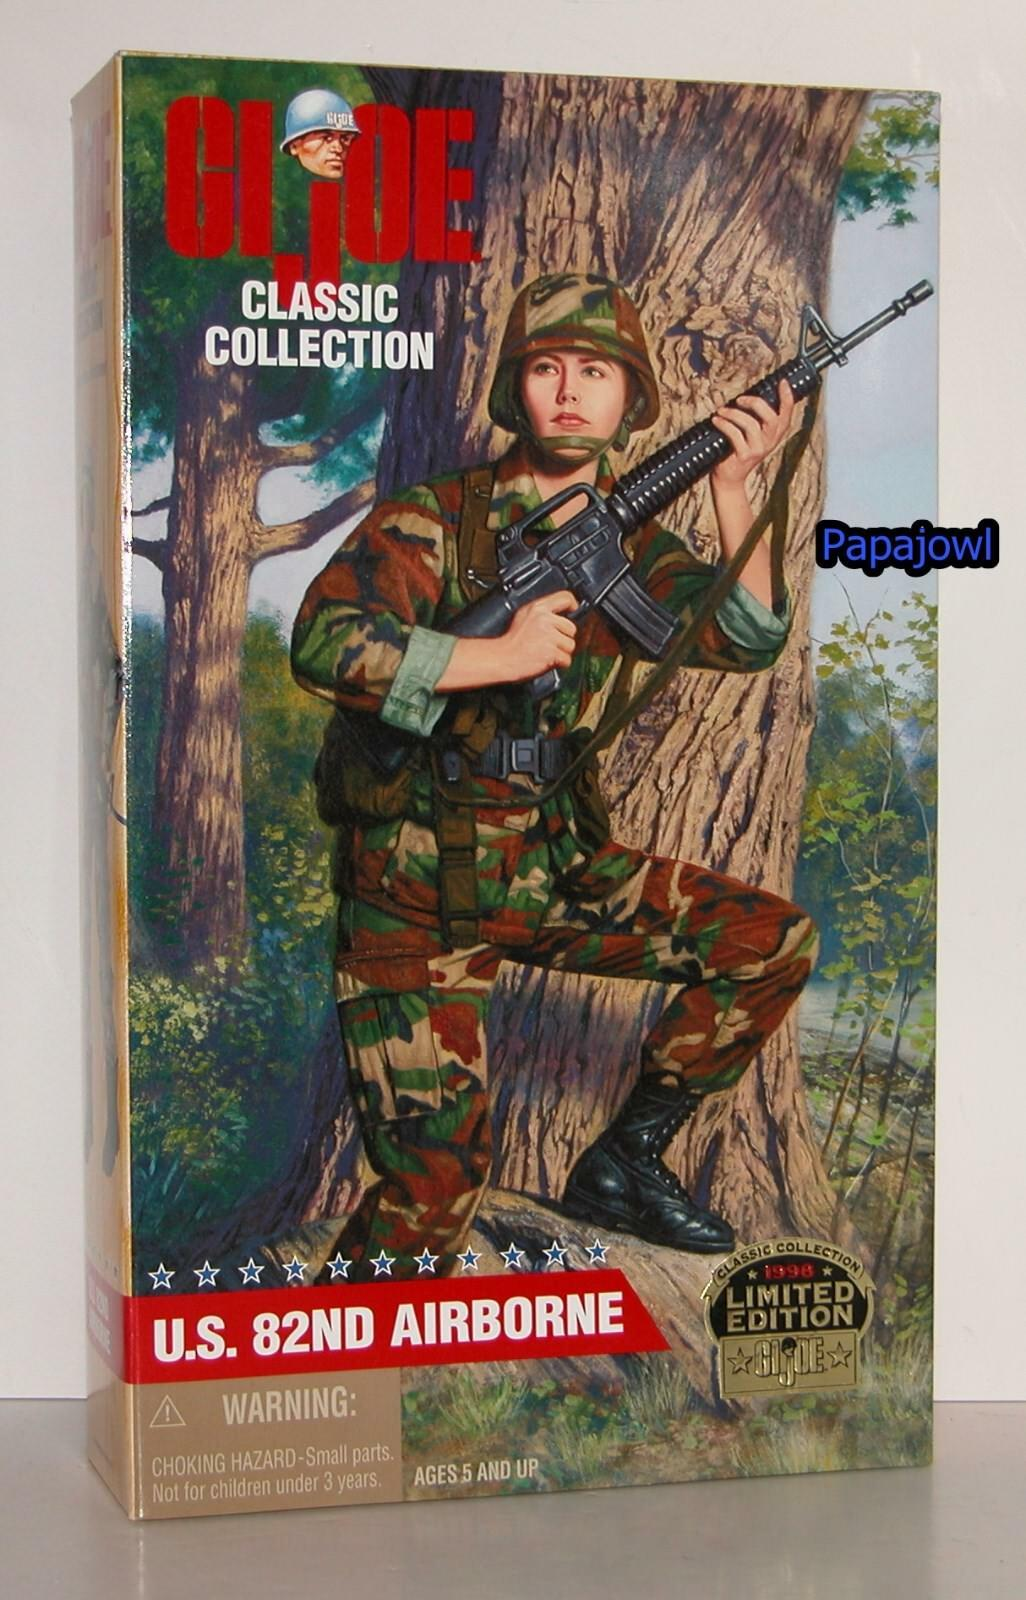 GI JOE Classic Collection US 82nd Airborne 12  1 6th Action Figure 1998 Hasbro